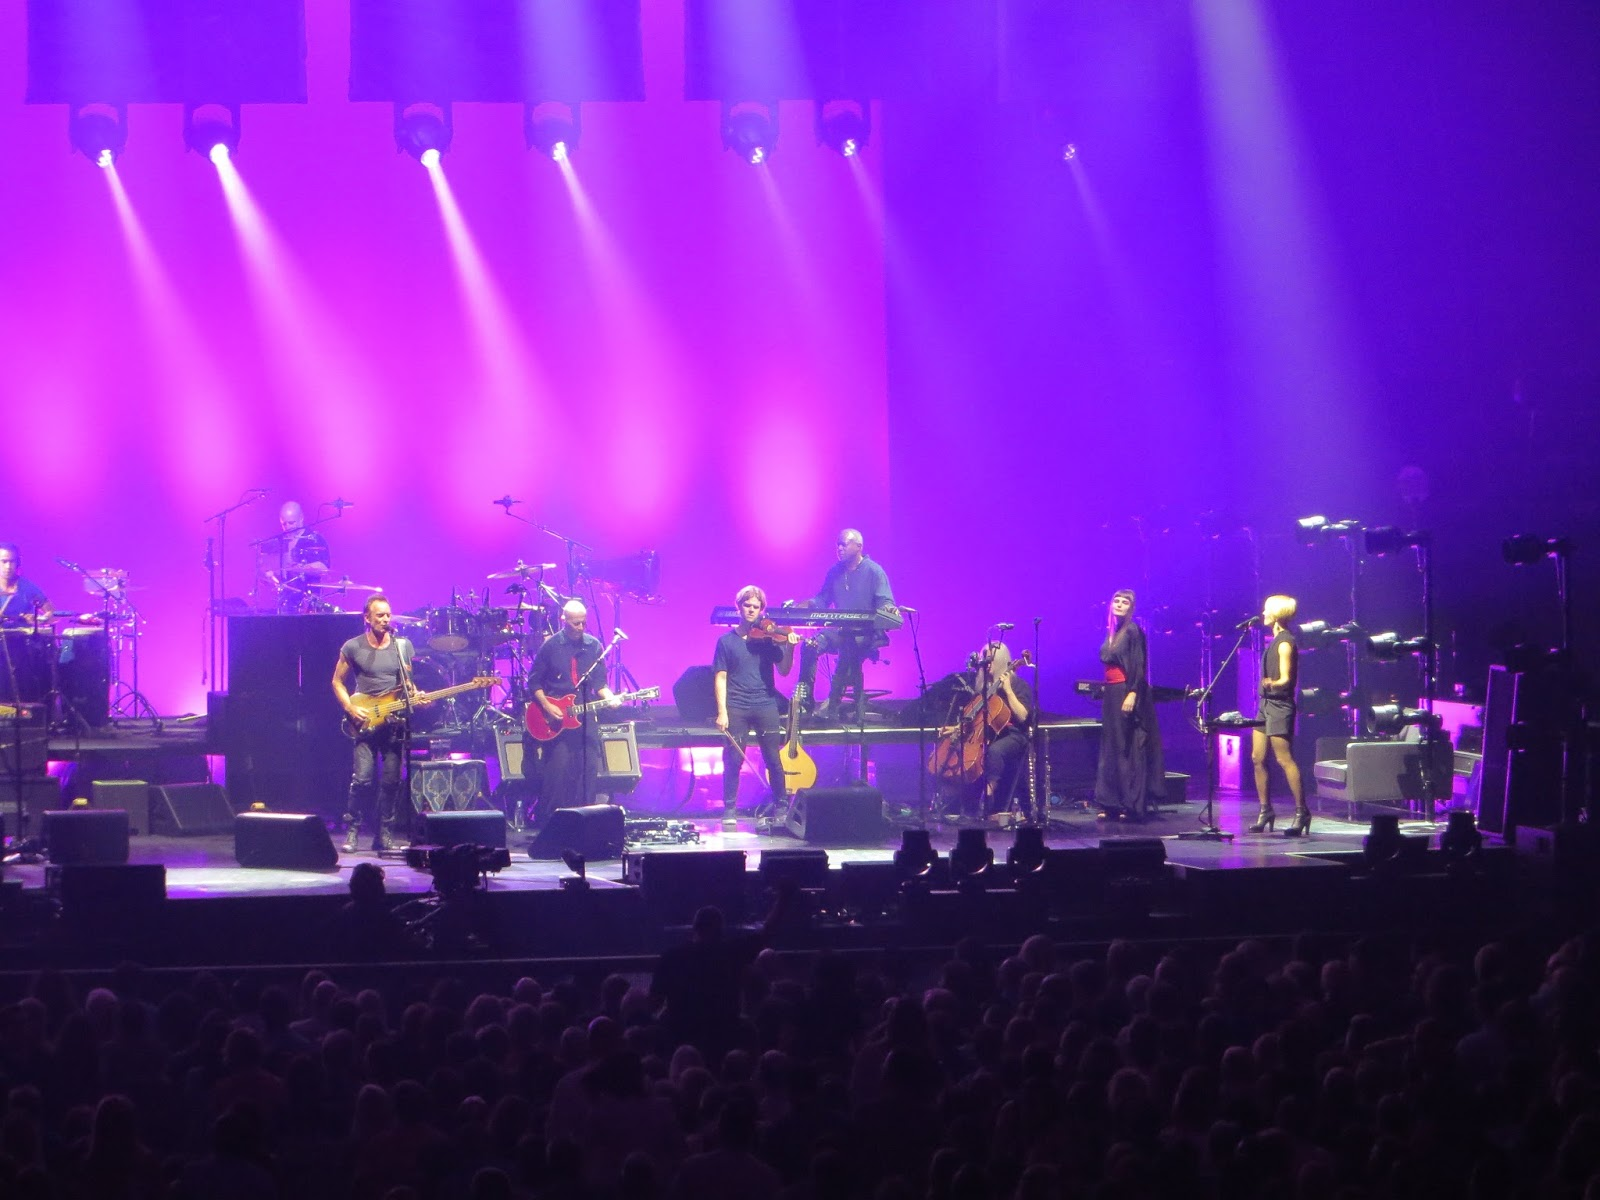 Indie Obsessive: Sting and Peter Gabriel on Tour – A Concert Review